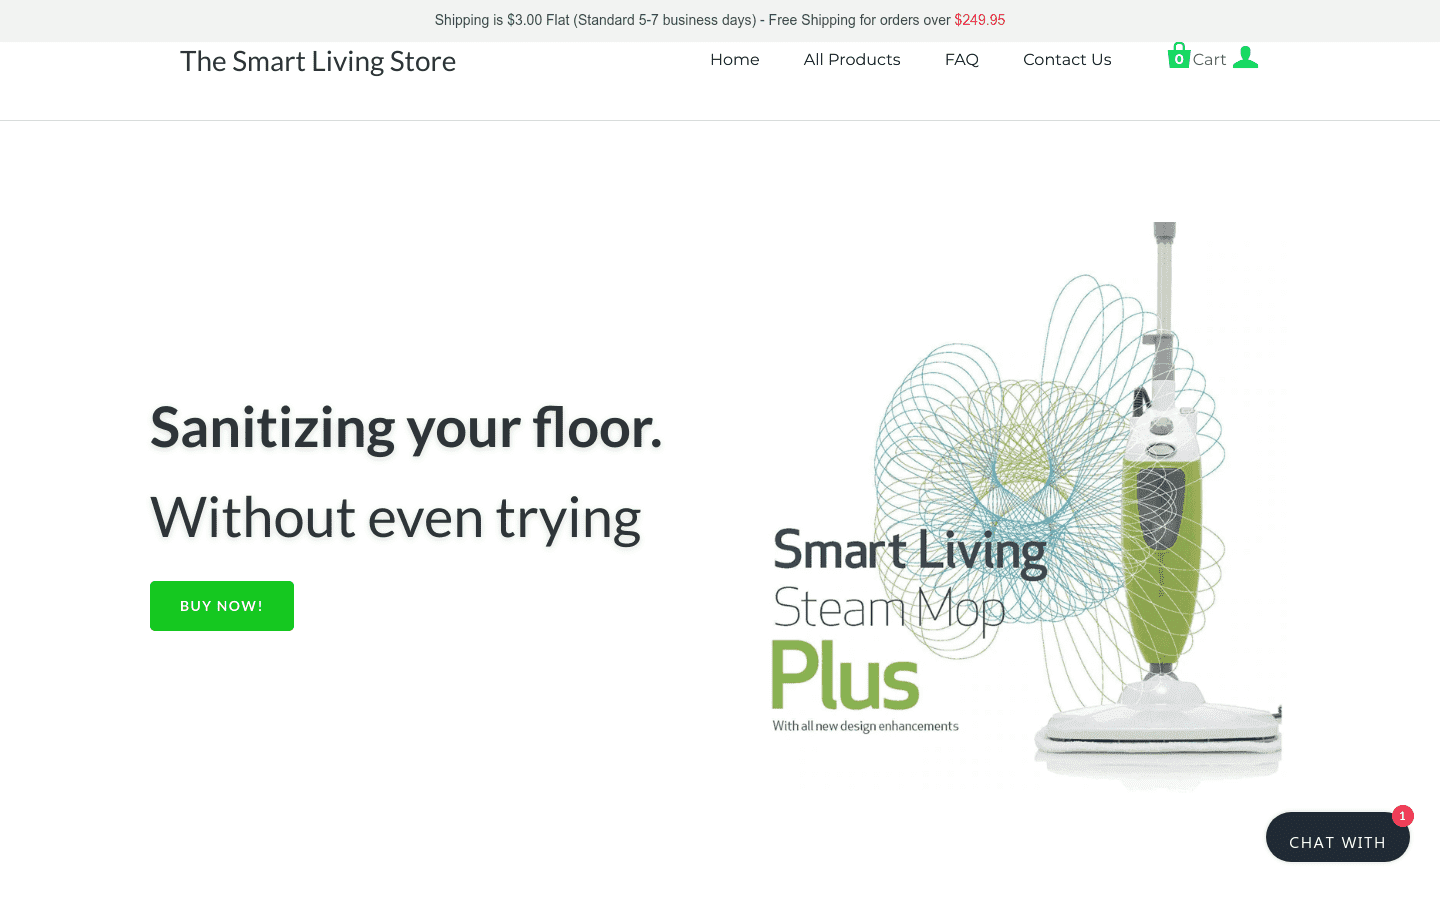 The Smart Living Store reviews and complaints